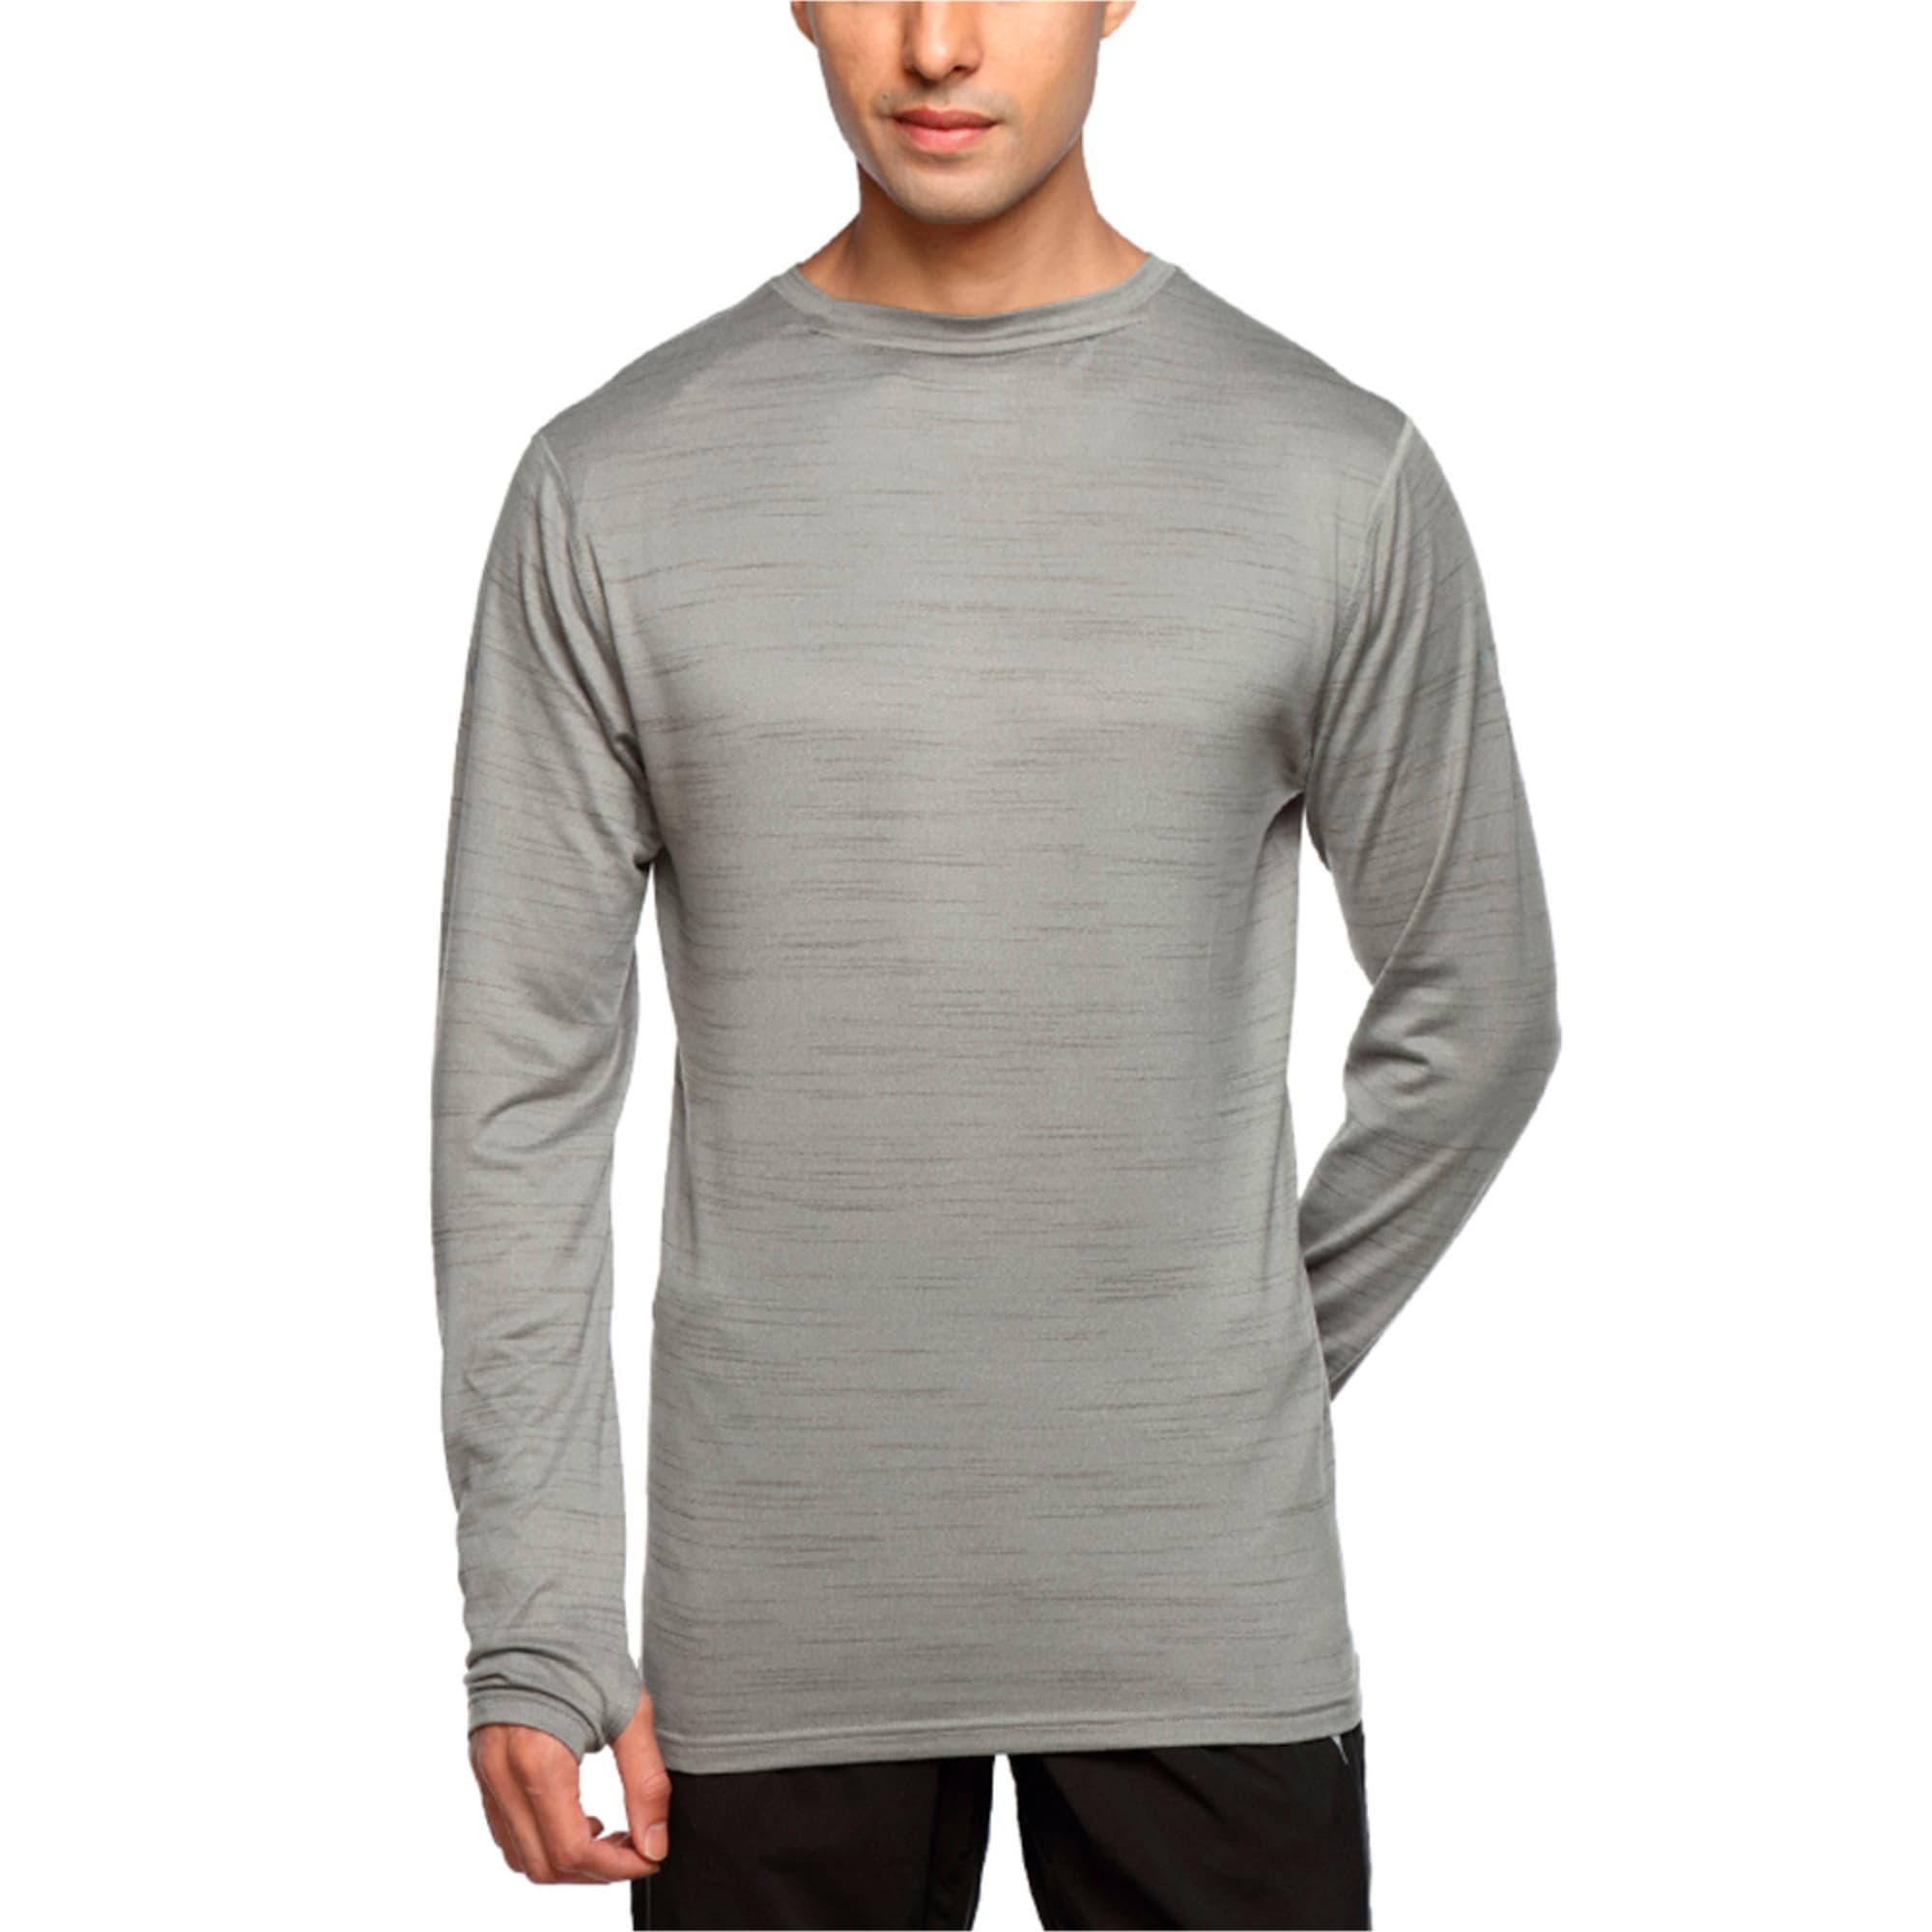 Thumbnail 1 of Rebel-Run L S Tee, Medium Gray Heather, medium-IND